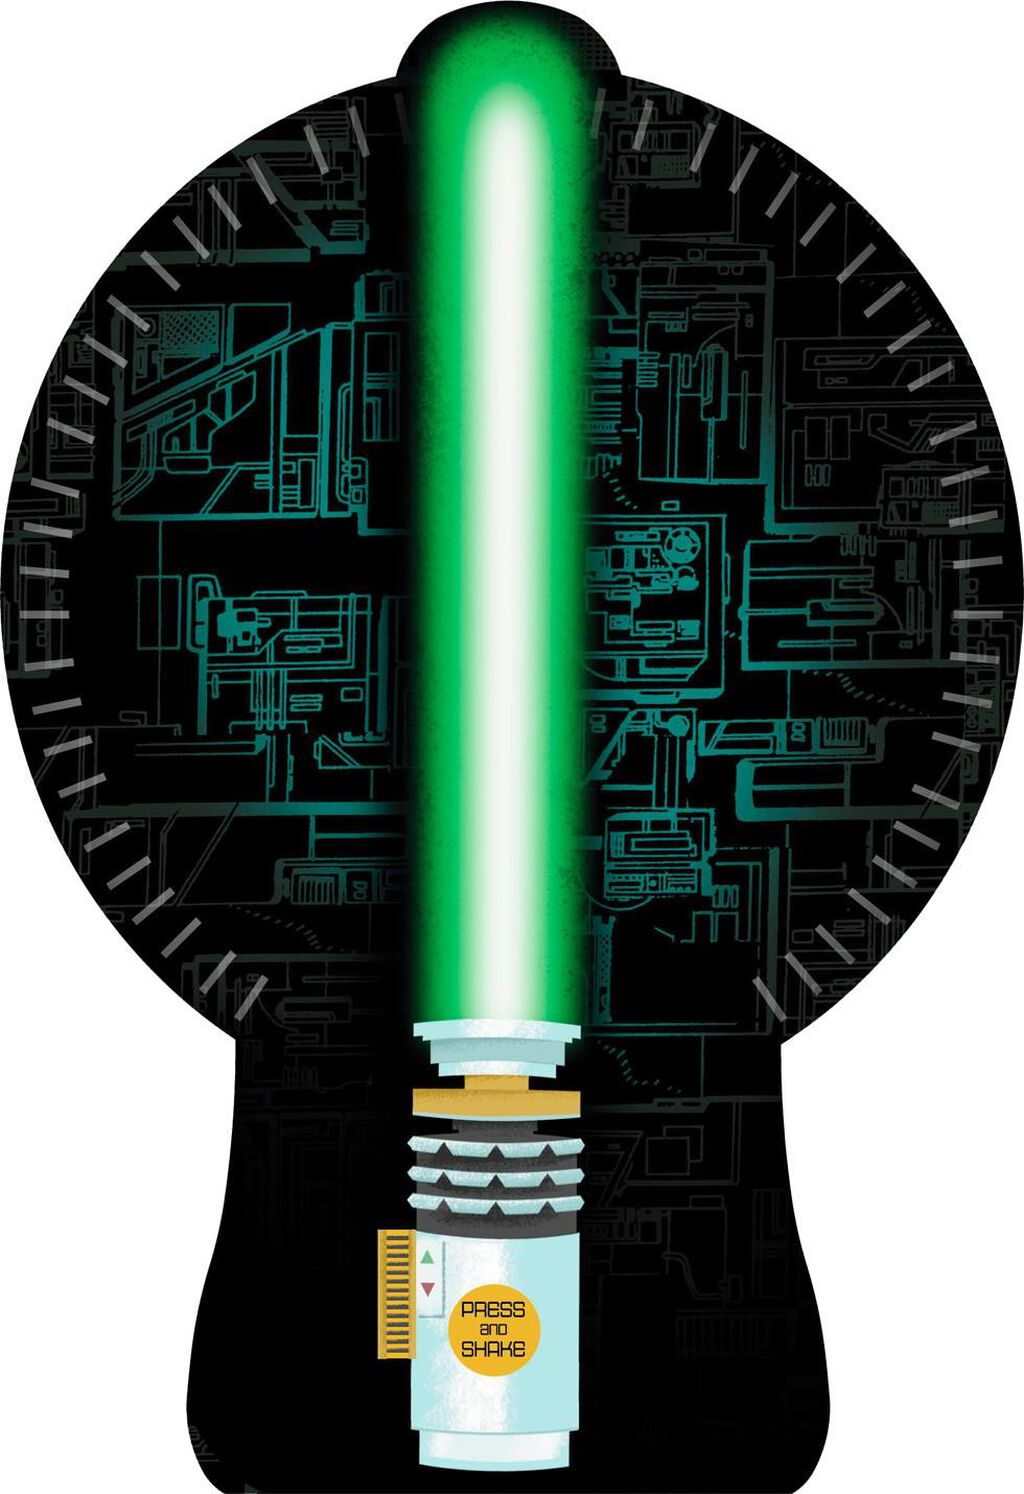 Star Wars Lightsaber Musical Birthday Card With Light Greeting